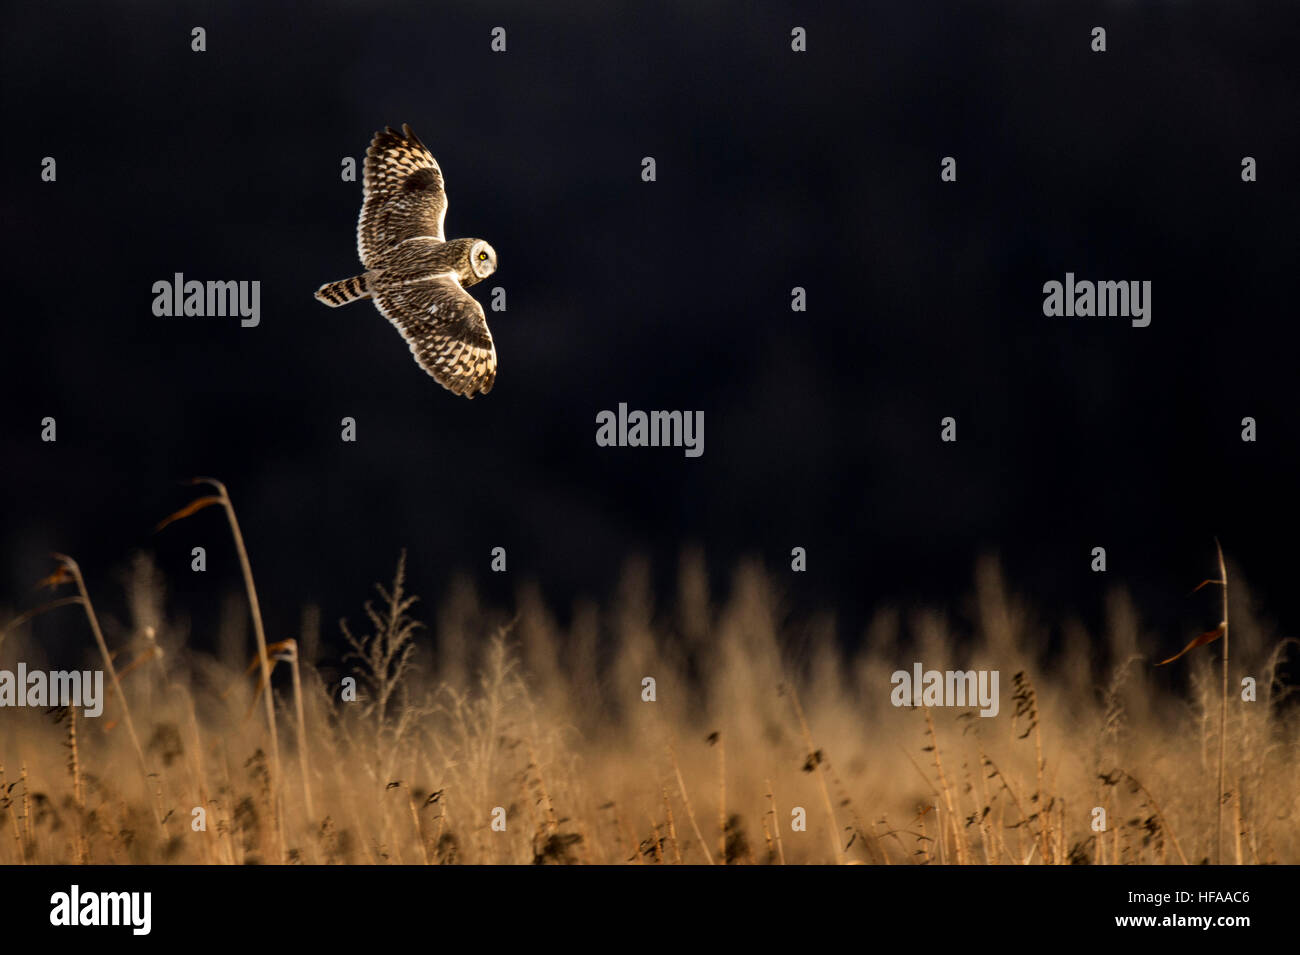 A Short-eared Owl flies just over a field of tall brown grass on a sunny evening against a black background. - Stock Image